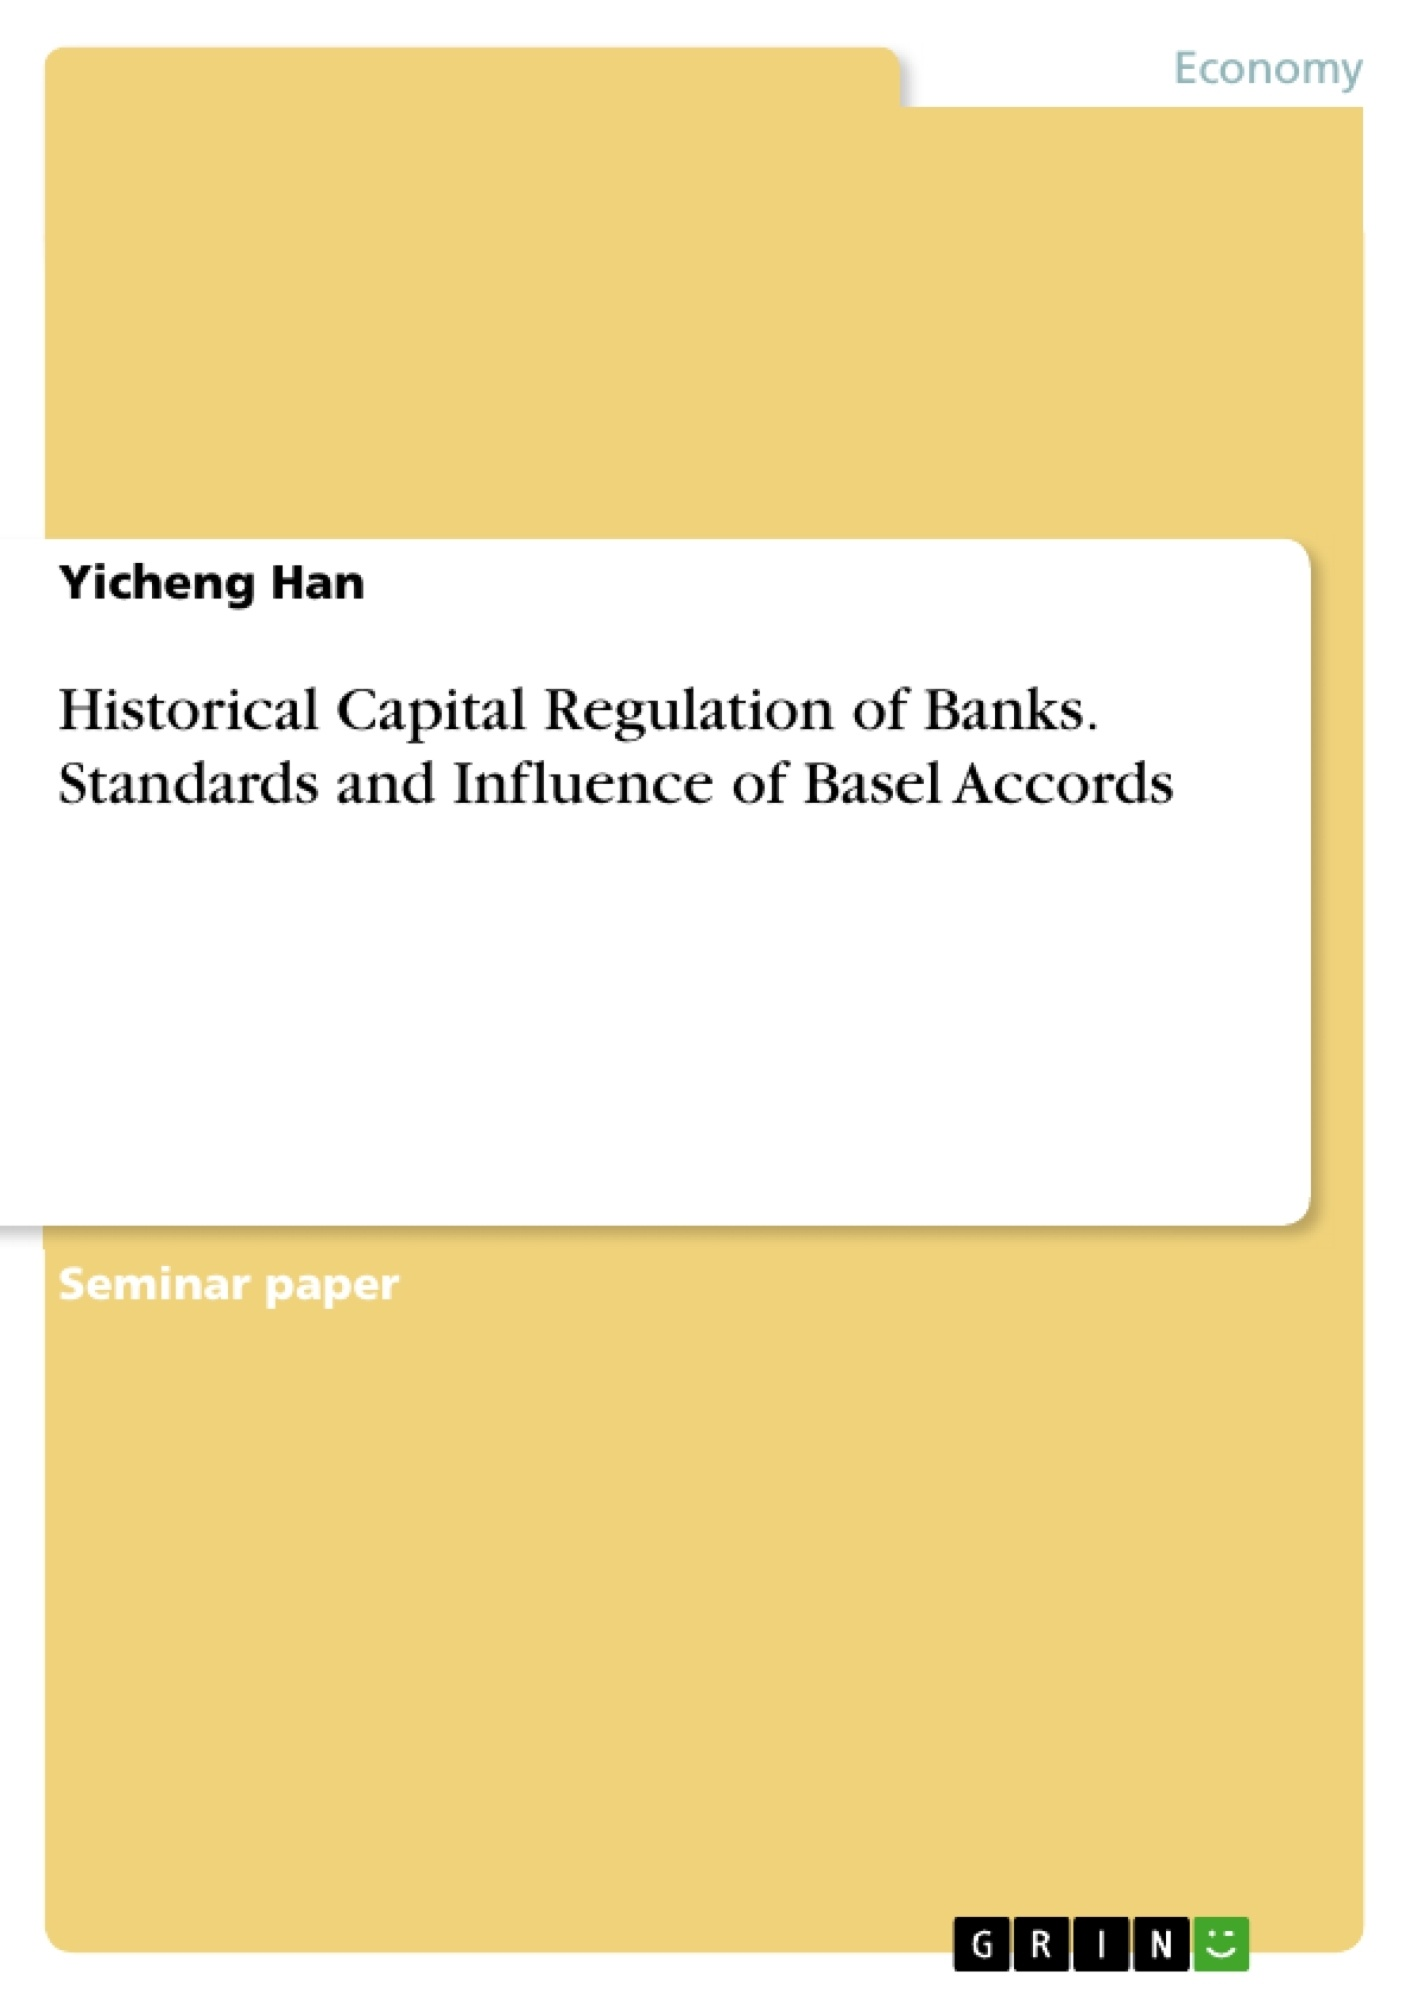 Title: Historical Capital Regulation of Banks. Standards and Influence of Basel Accords